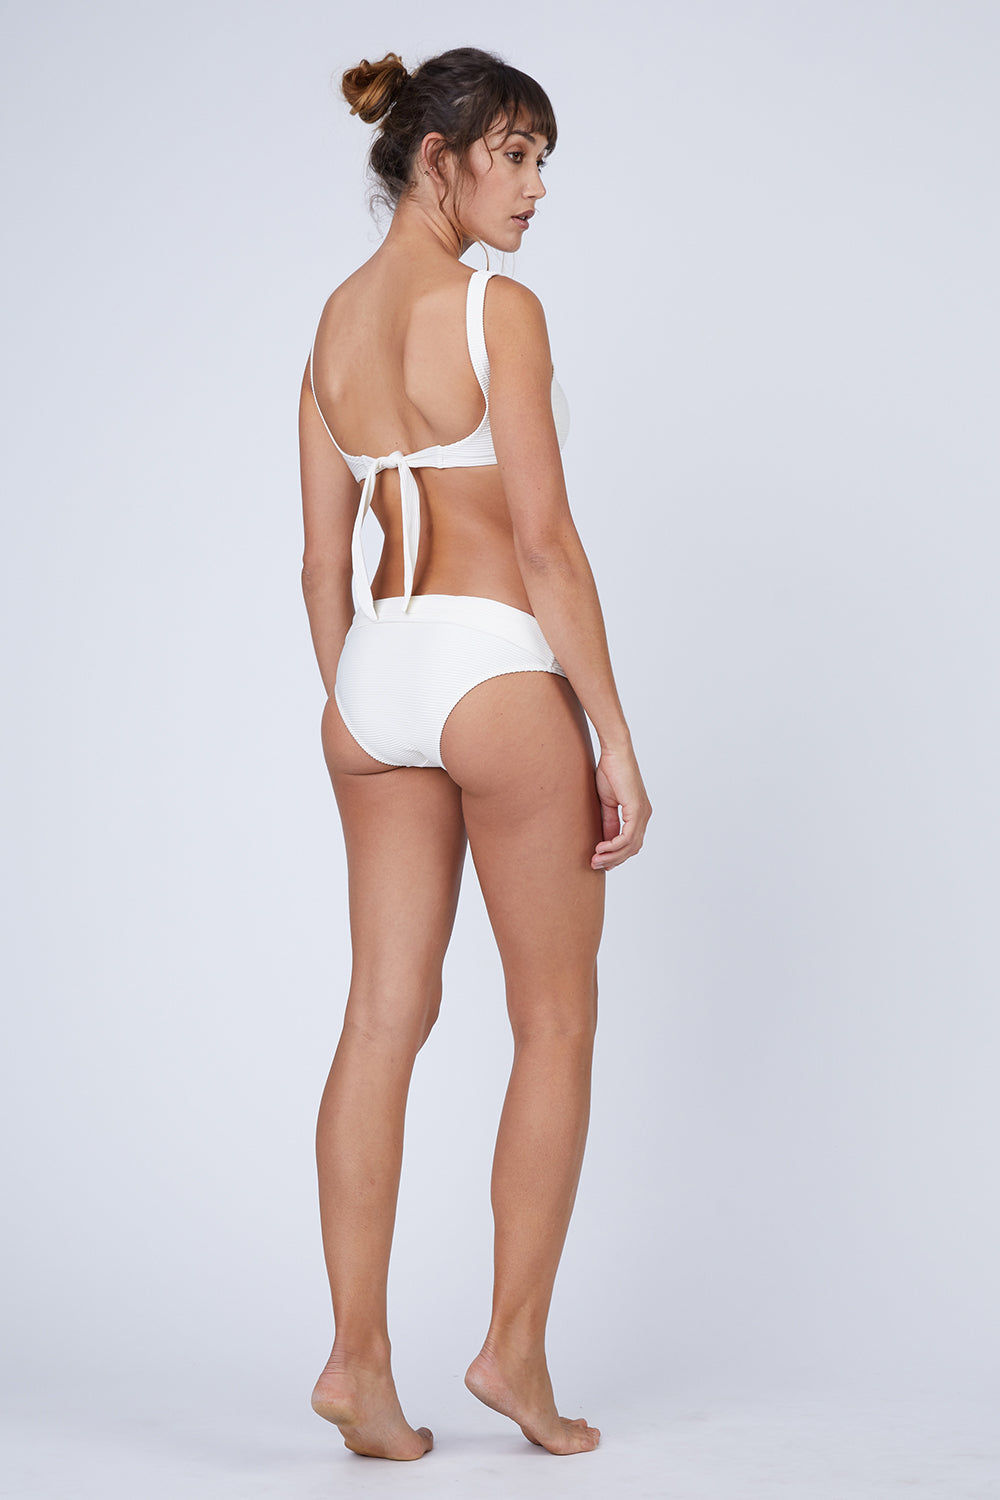 HEIDI KLEIN Fold Over Bikini Bottom - Cream Bikini Bottom | Cream| Heidi Klein Fold Over Bikini Bottom - Cream. Features:  The bottom is cut to be Mid Rise, Mid Coverage. Fully elasticated along legs for a snug fit and to help stay in place when wearer is swimming. Elastic is fully enclosed for a soft, comfortable finish. Fold over detail is stitched in place at the side seam to ensure the correct style shape is maintained when worn – won't need to be adjusted continuously. Front View